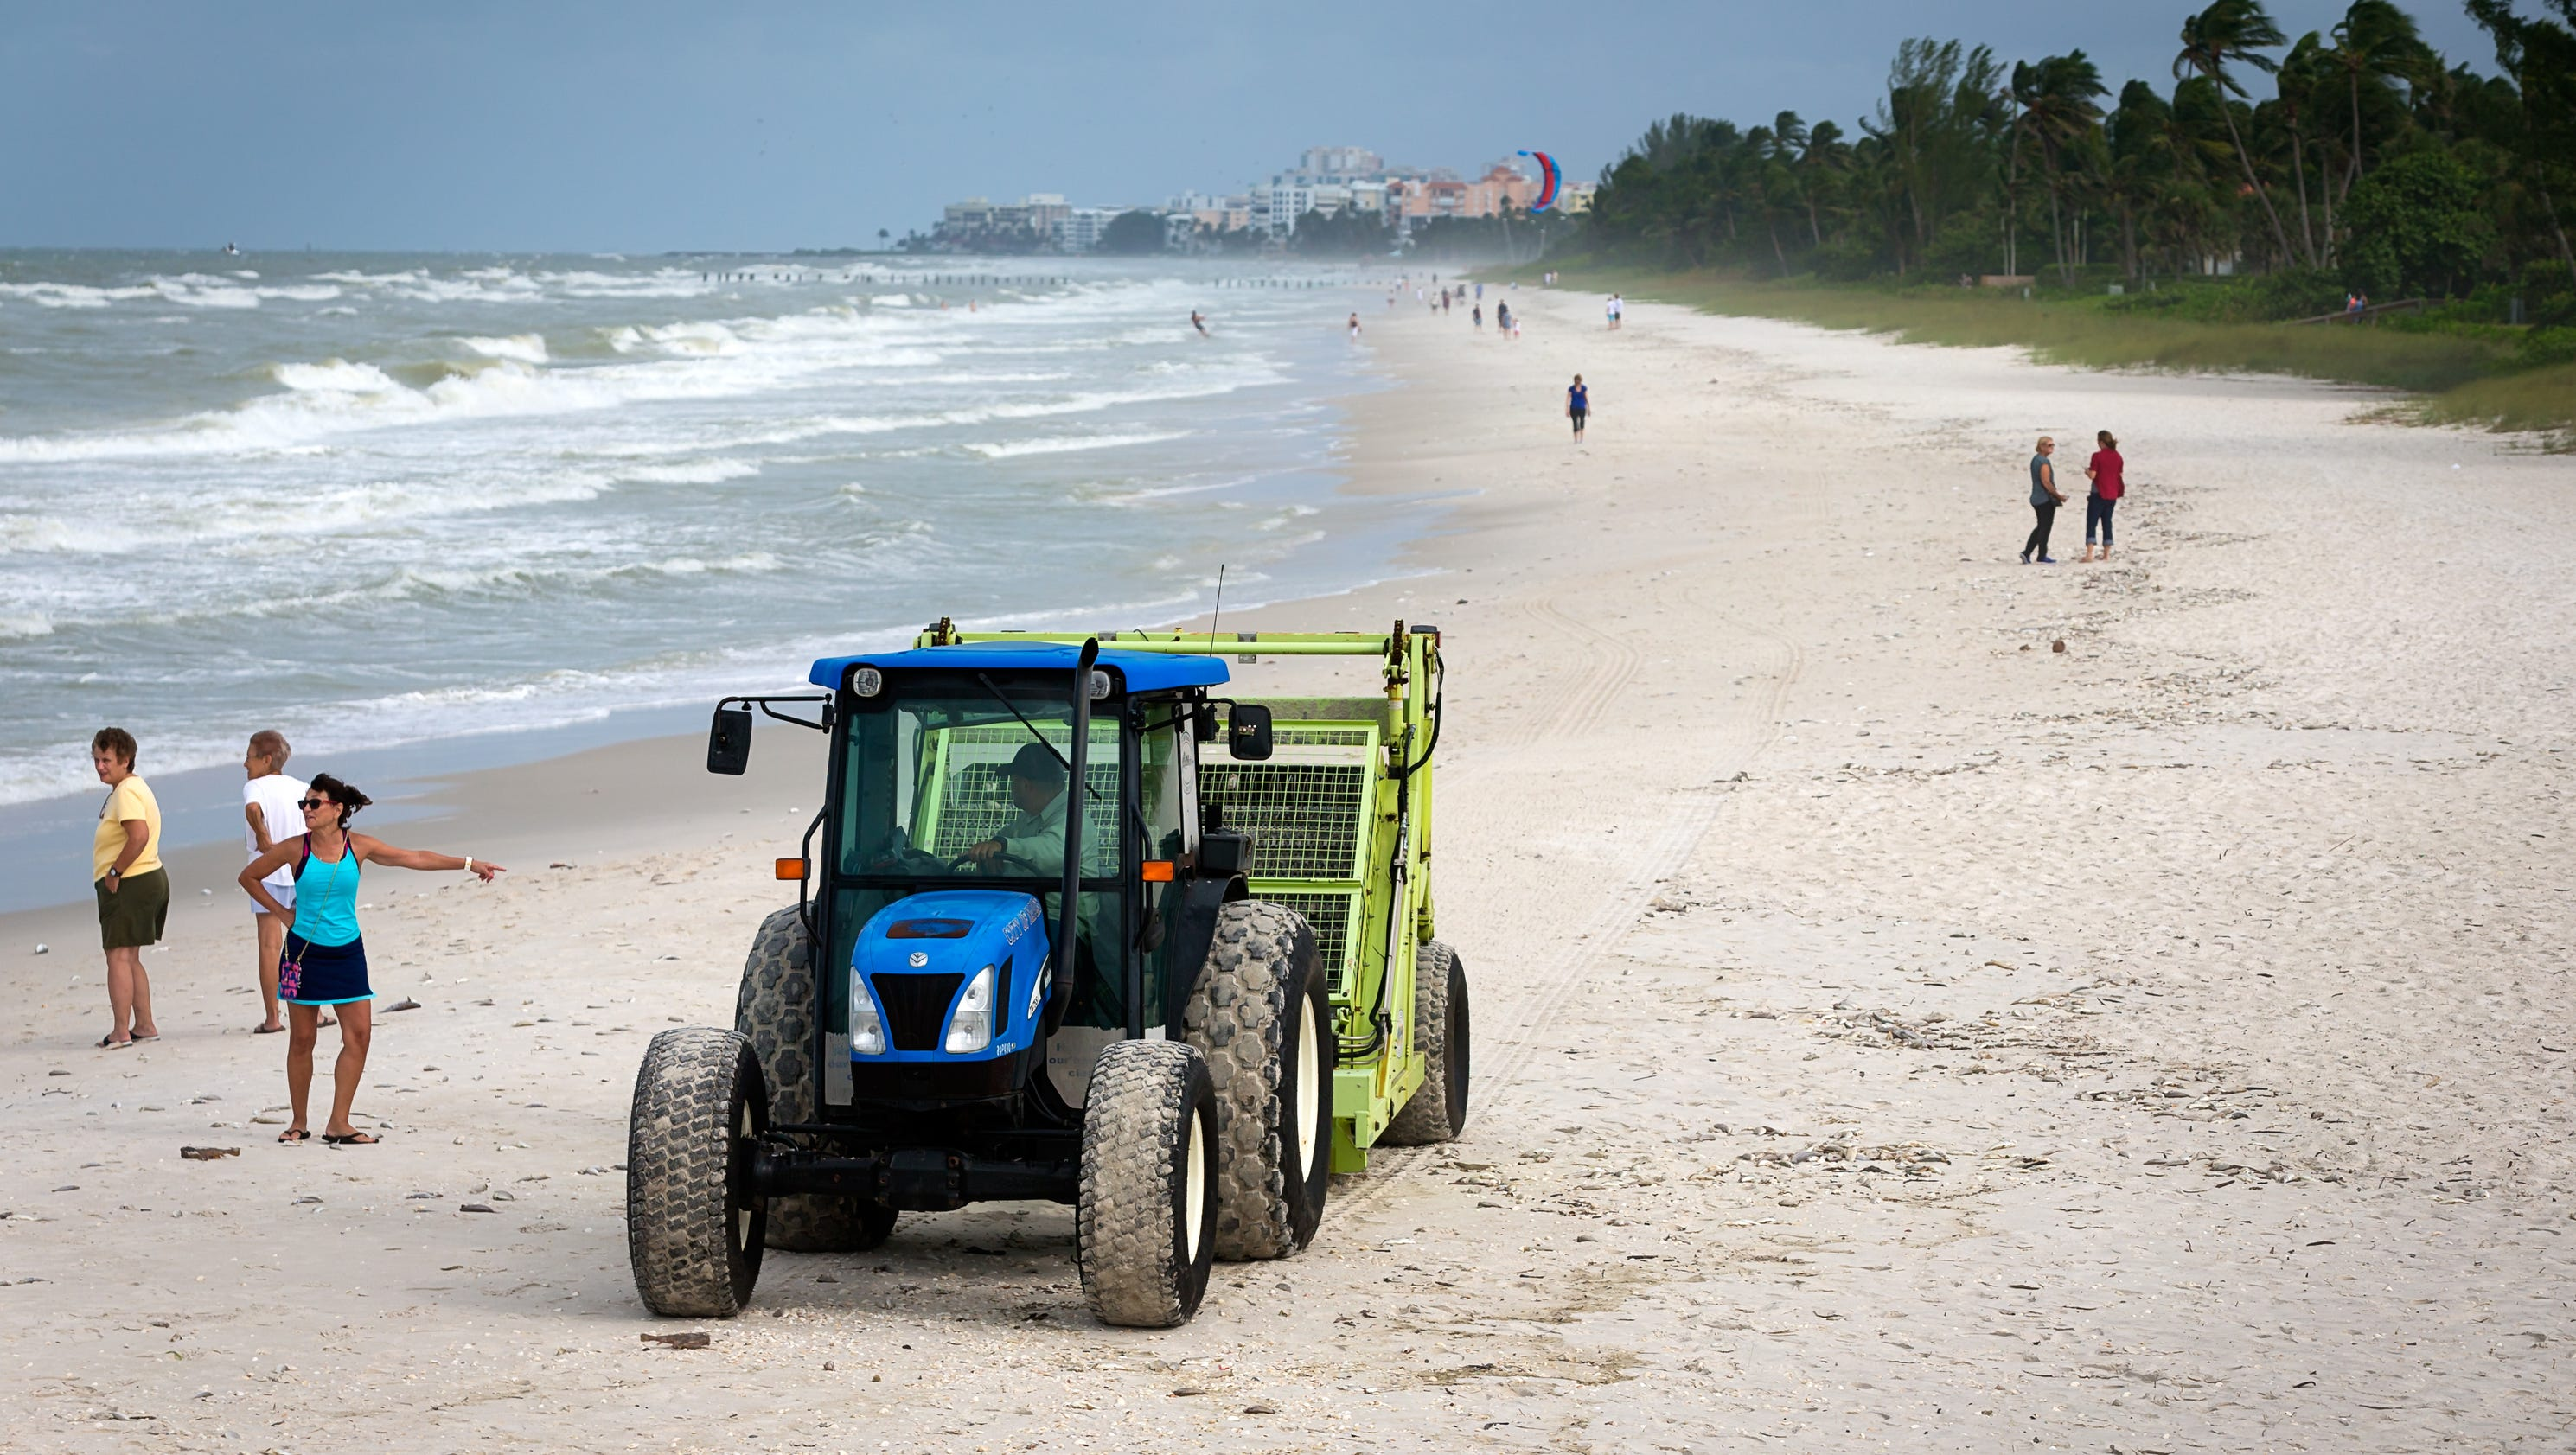 Low levels of red tide detected in collier for Naples tides for fishing